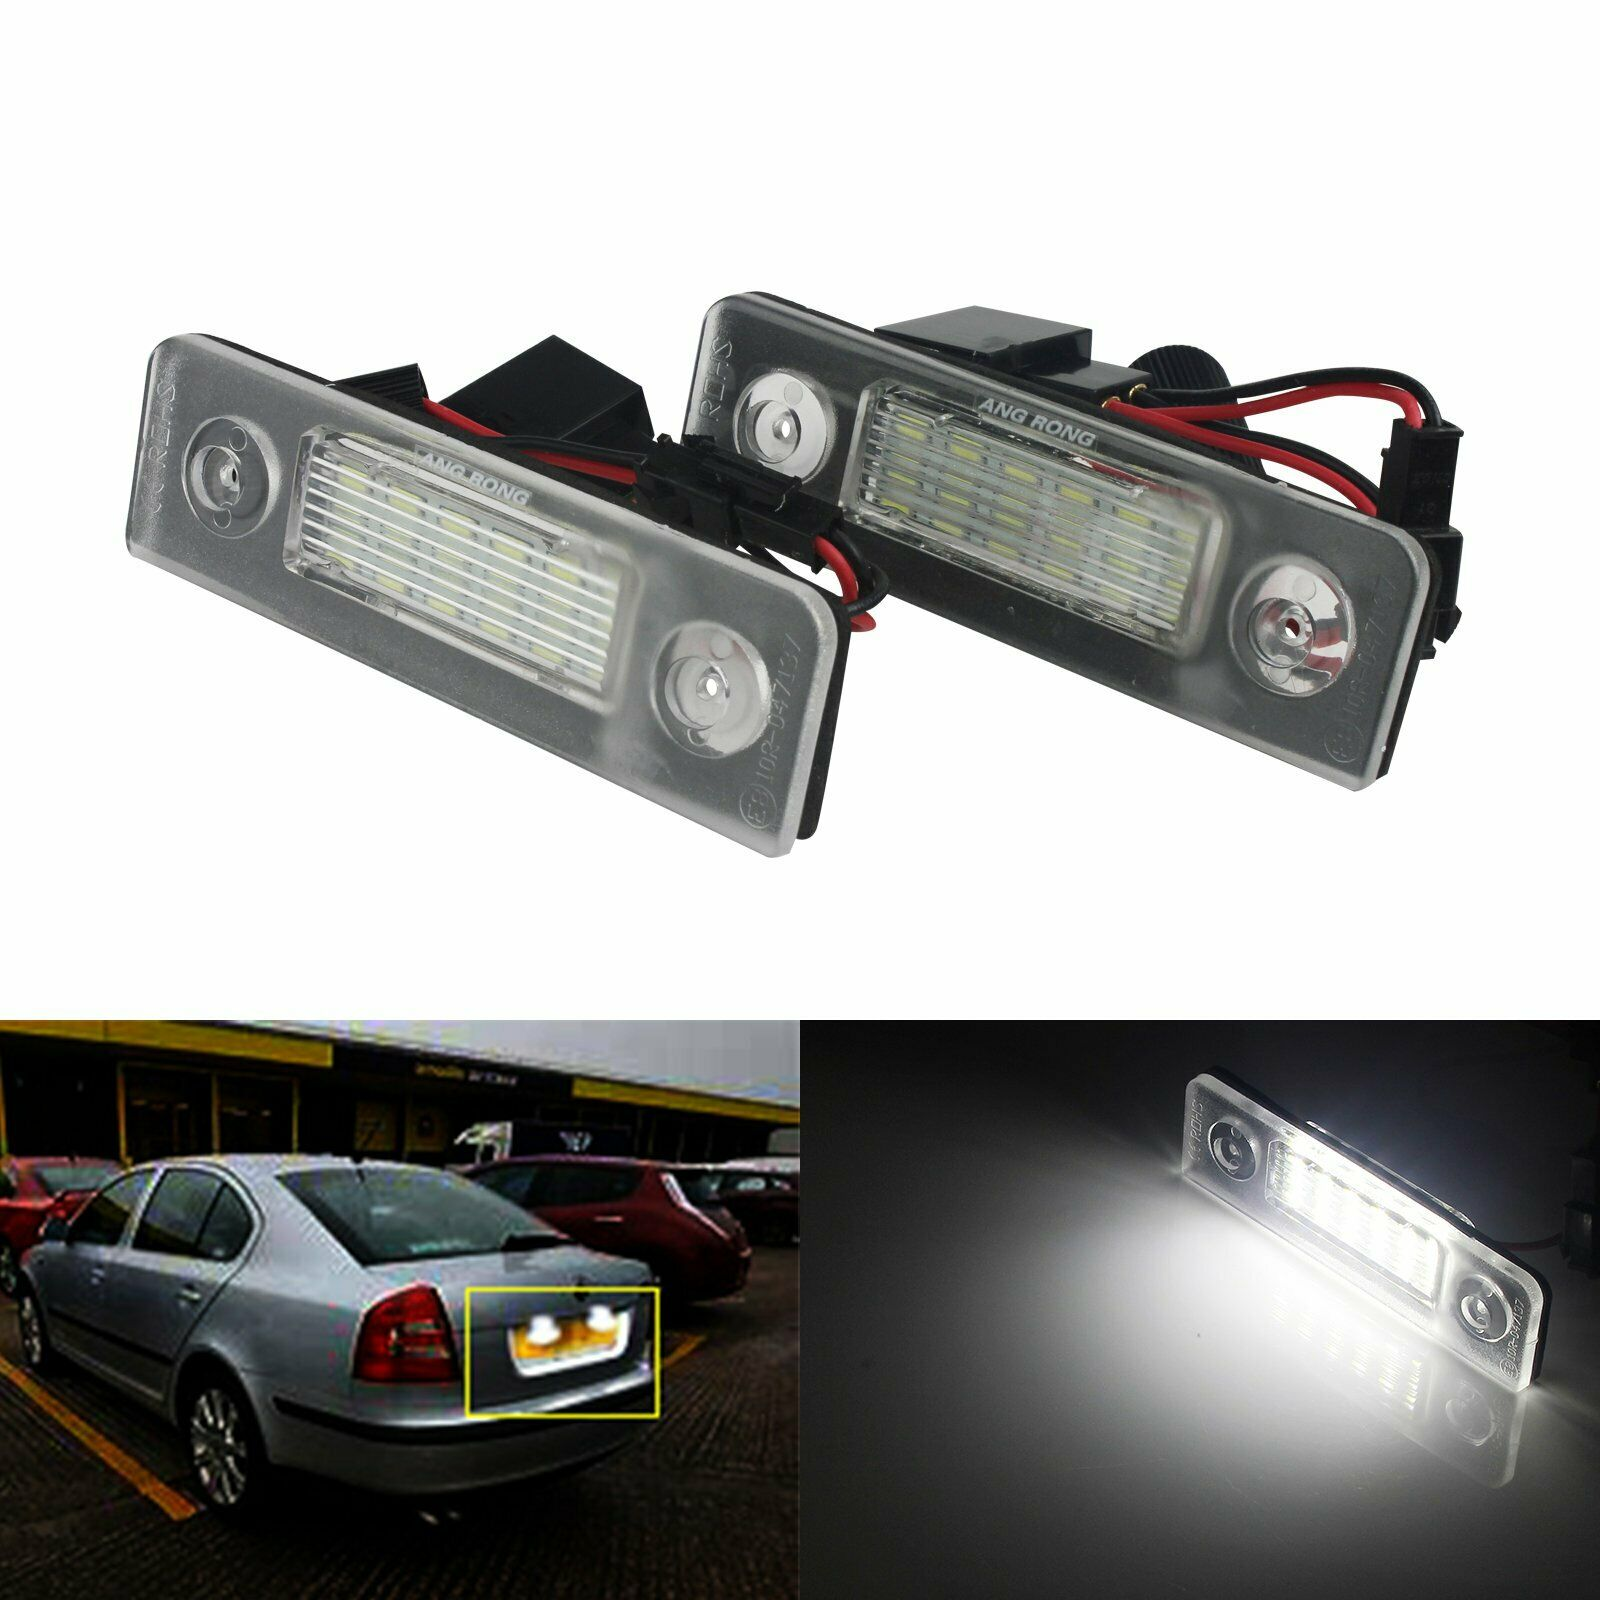 2x Fits Nissan Micra K11 Bright Xenon White LED Number Plate Upgrade Light Bulbs